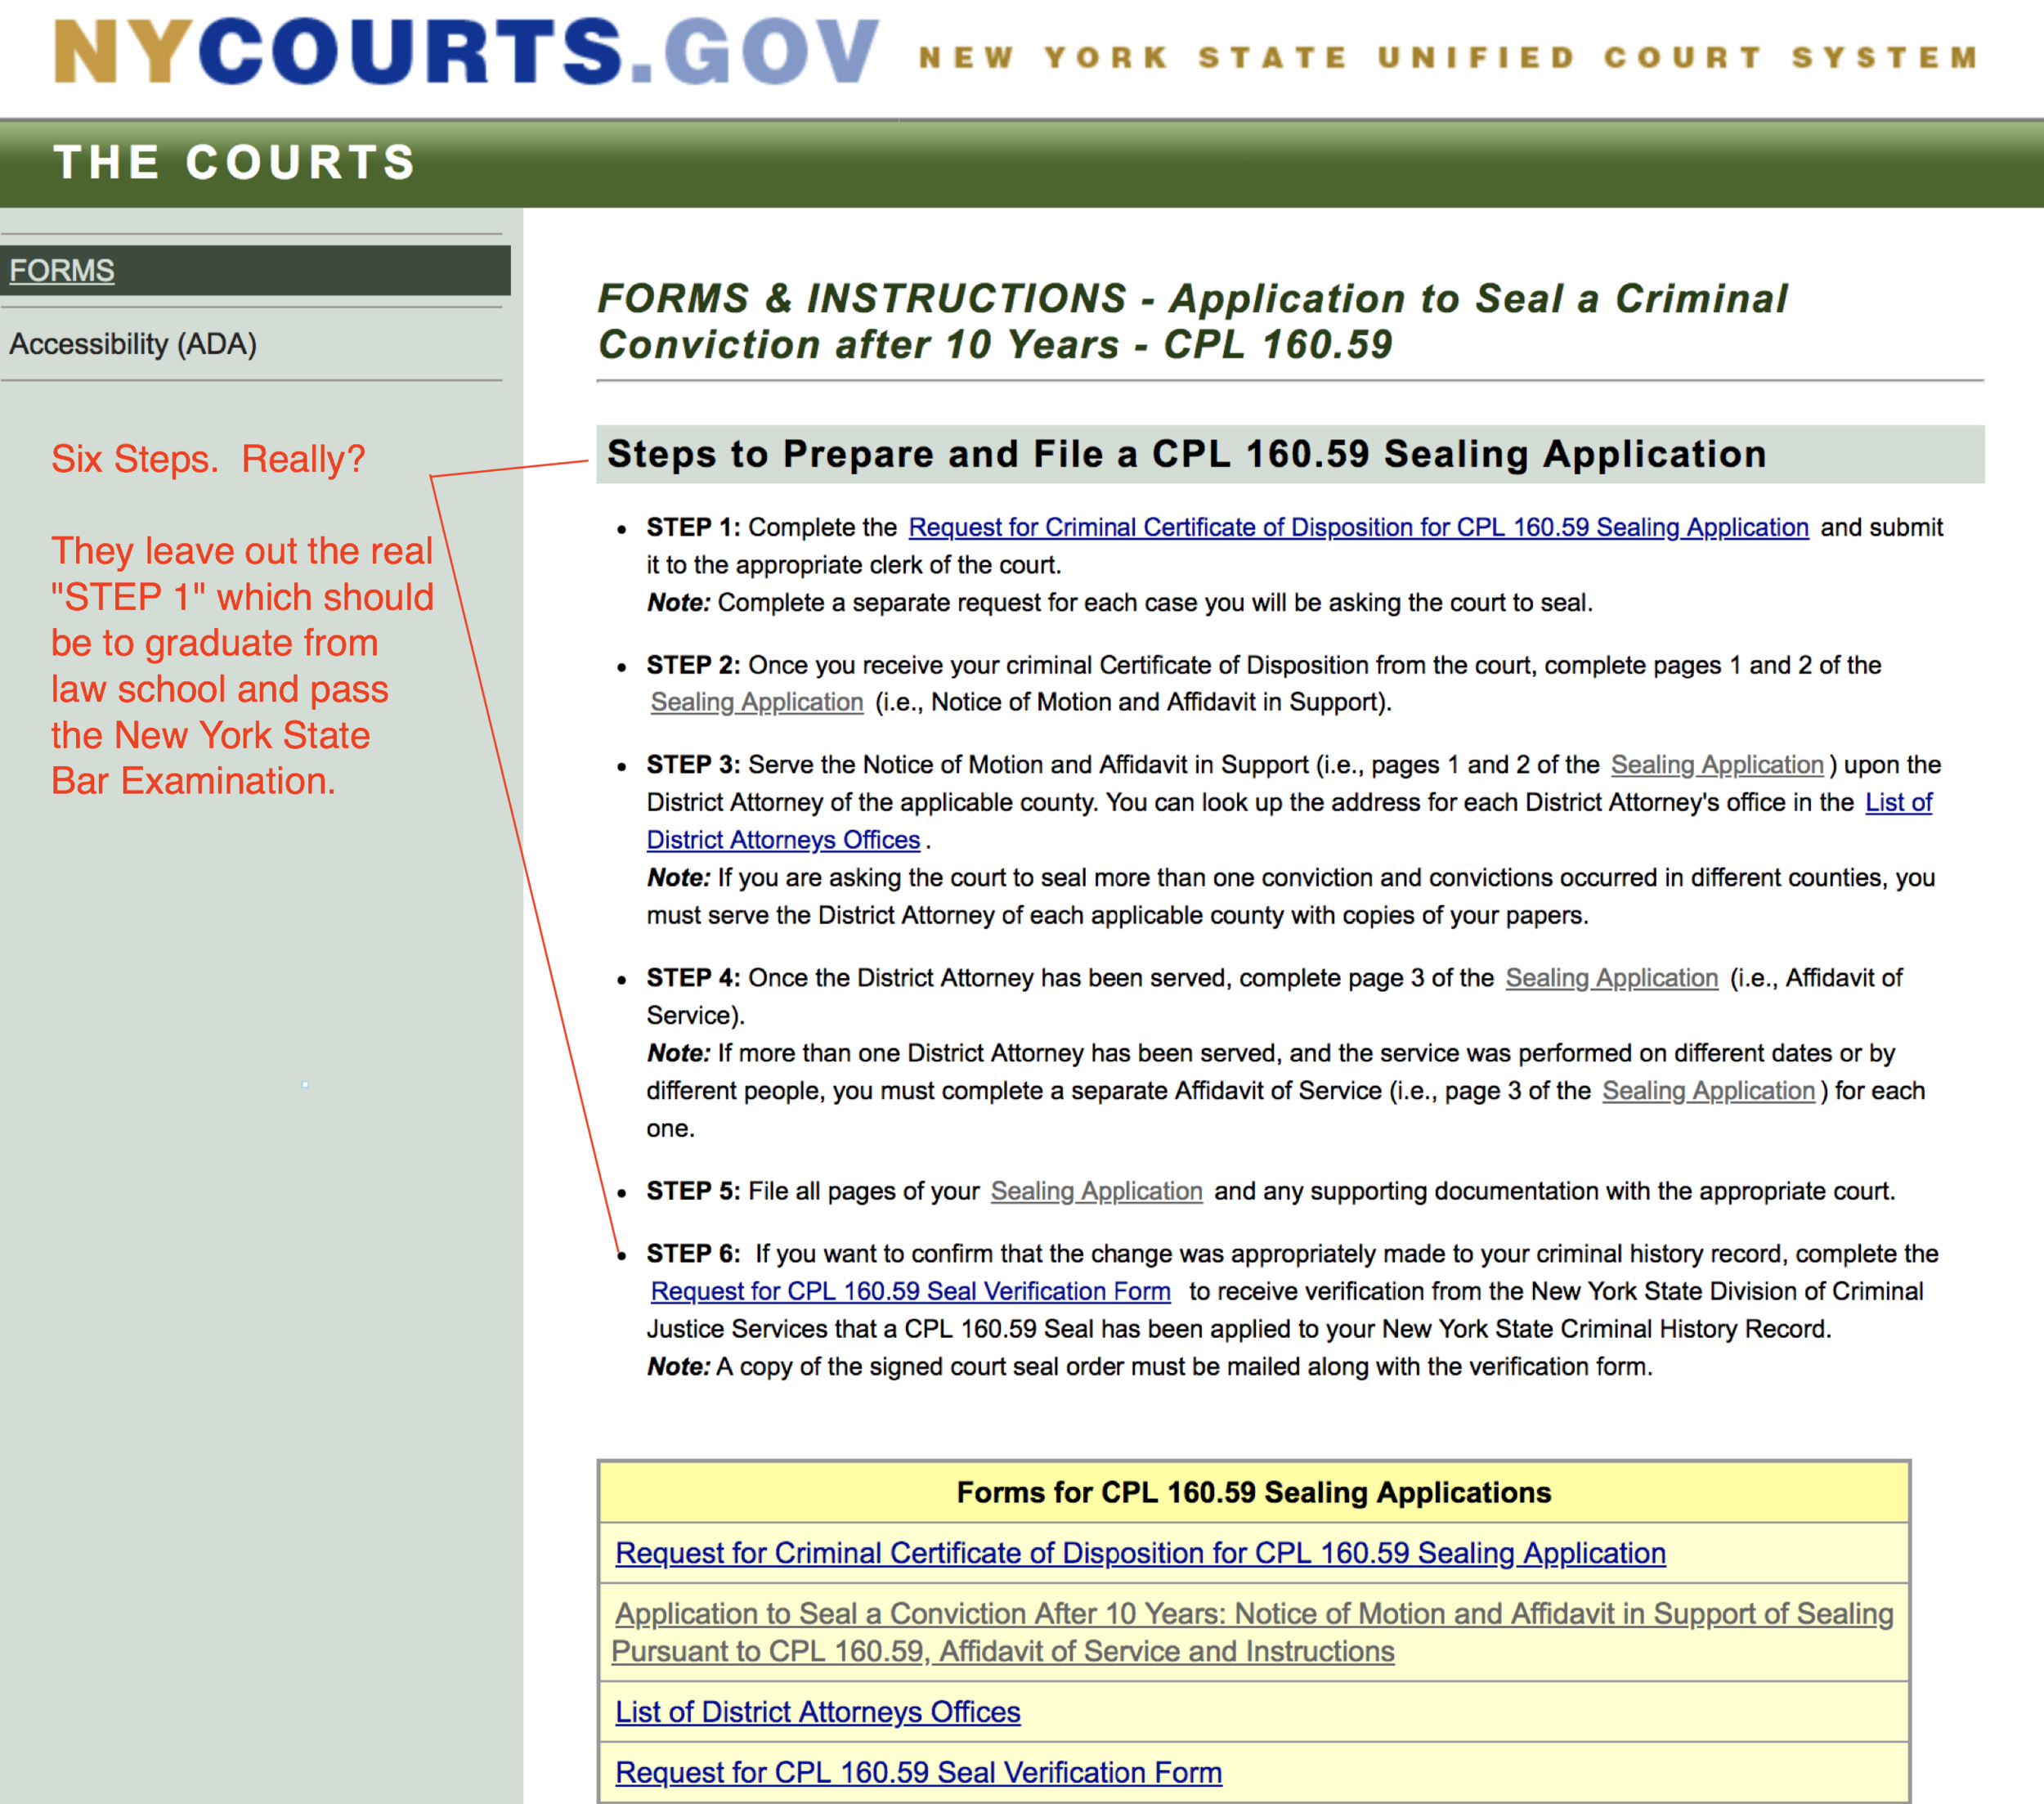 Here is a screen capture of the NY Courts website from September 30, 2018, where you can find instructions and forms needed to file a Do-it-Yourself conviction sealing motion. Red markup is mine.